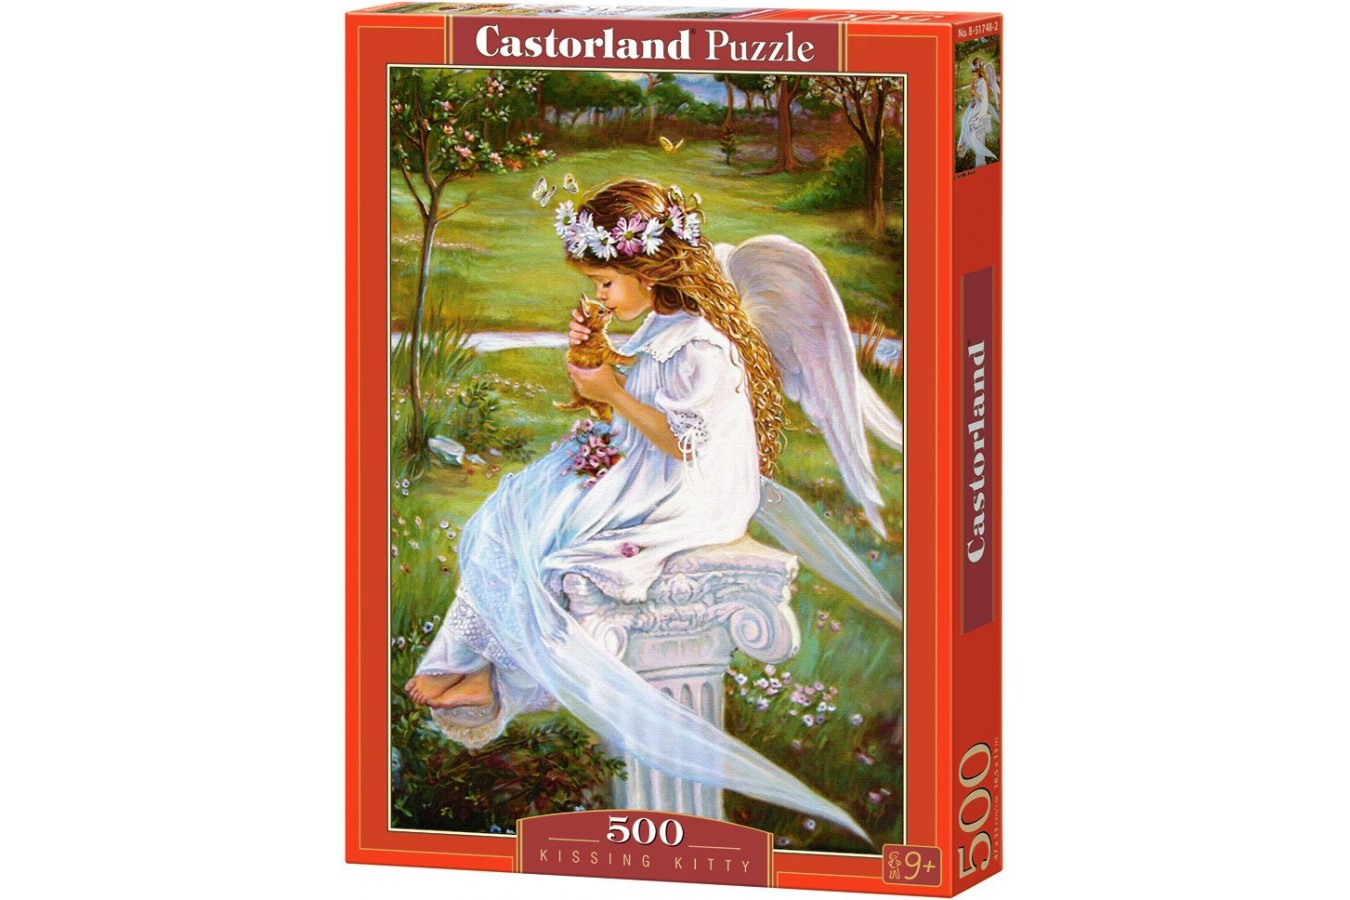 Puzzle Castorland - Kissing Kitty, 500 piese